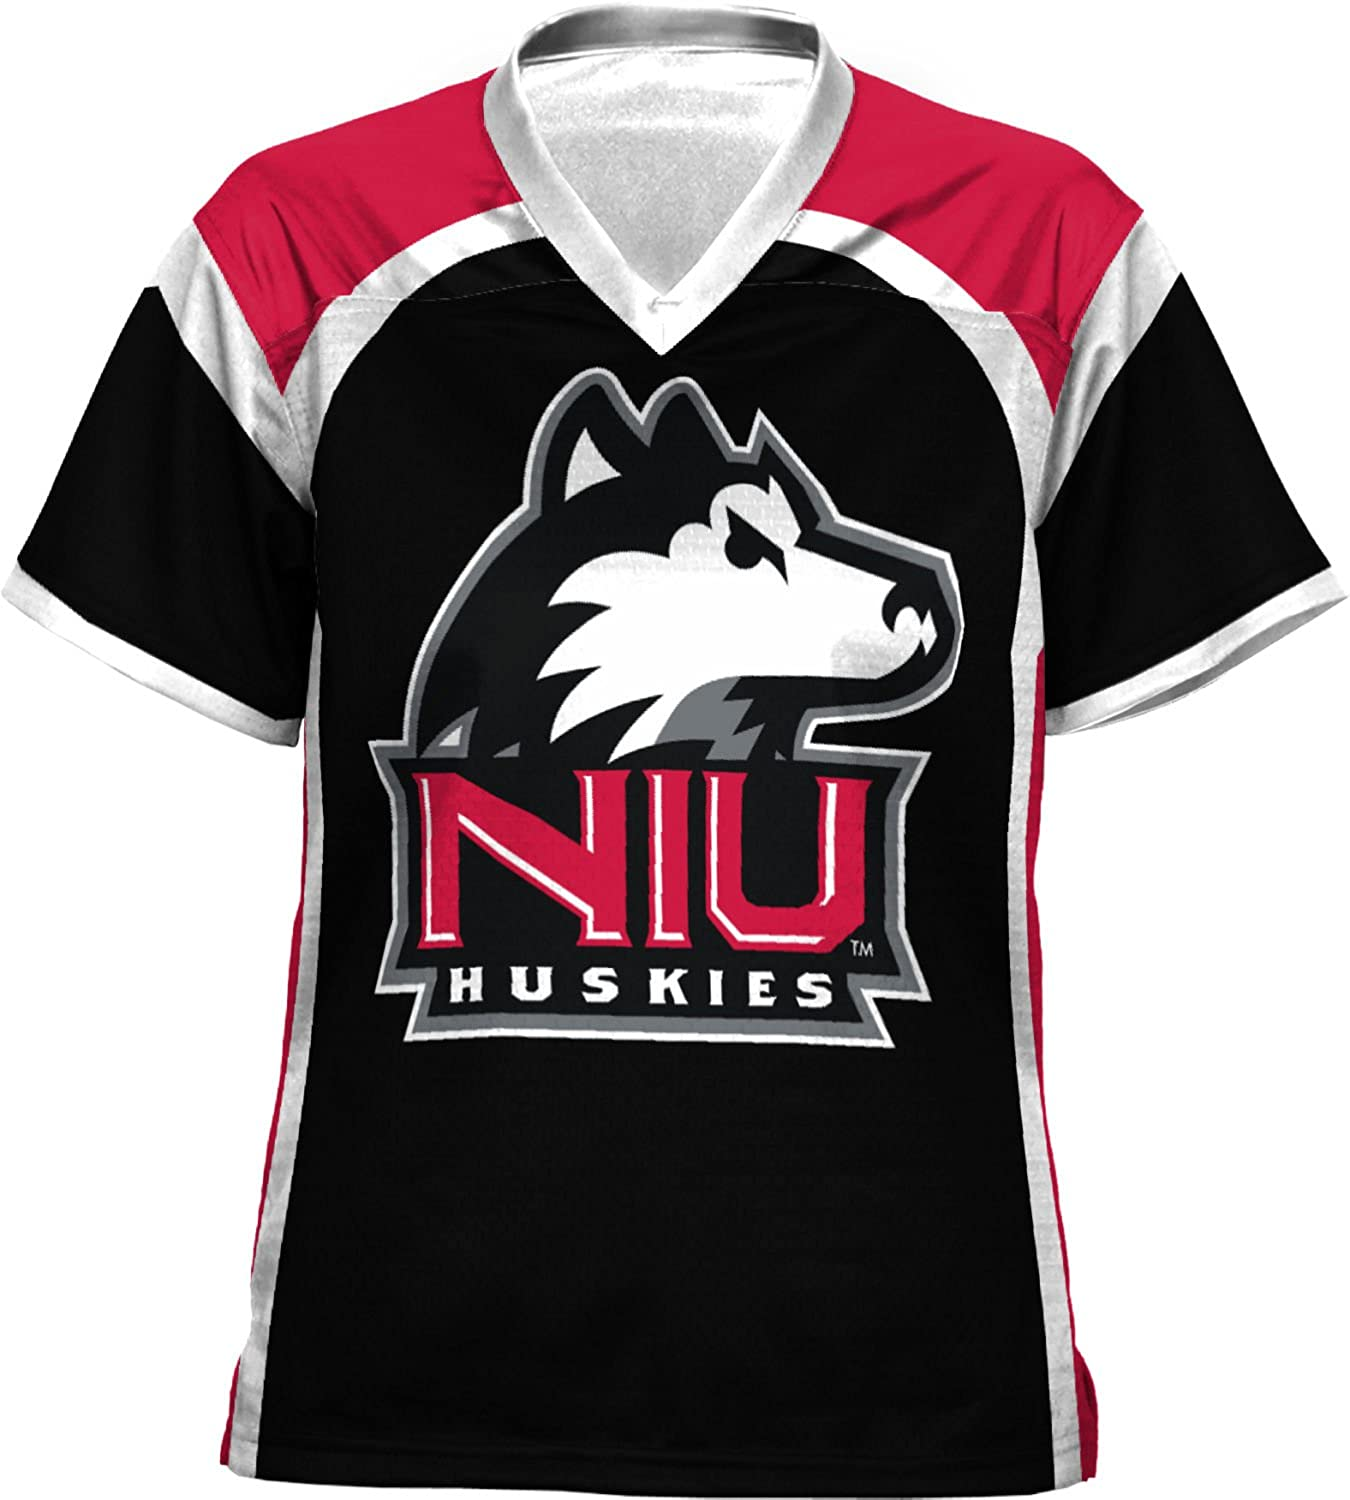 Tailgate ProSphere Northern Illinois University Girls Performance T-Shirt